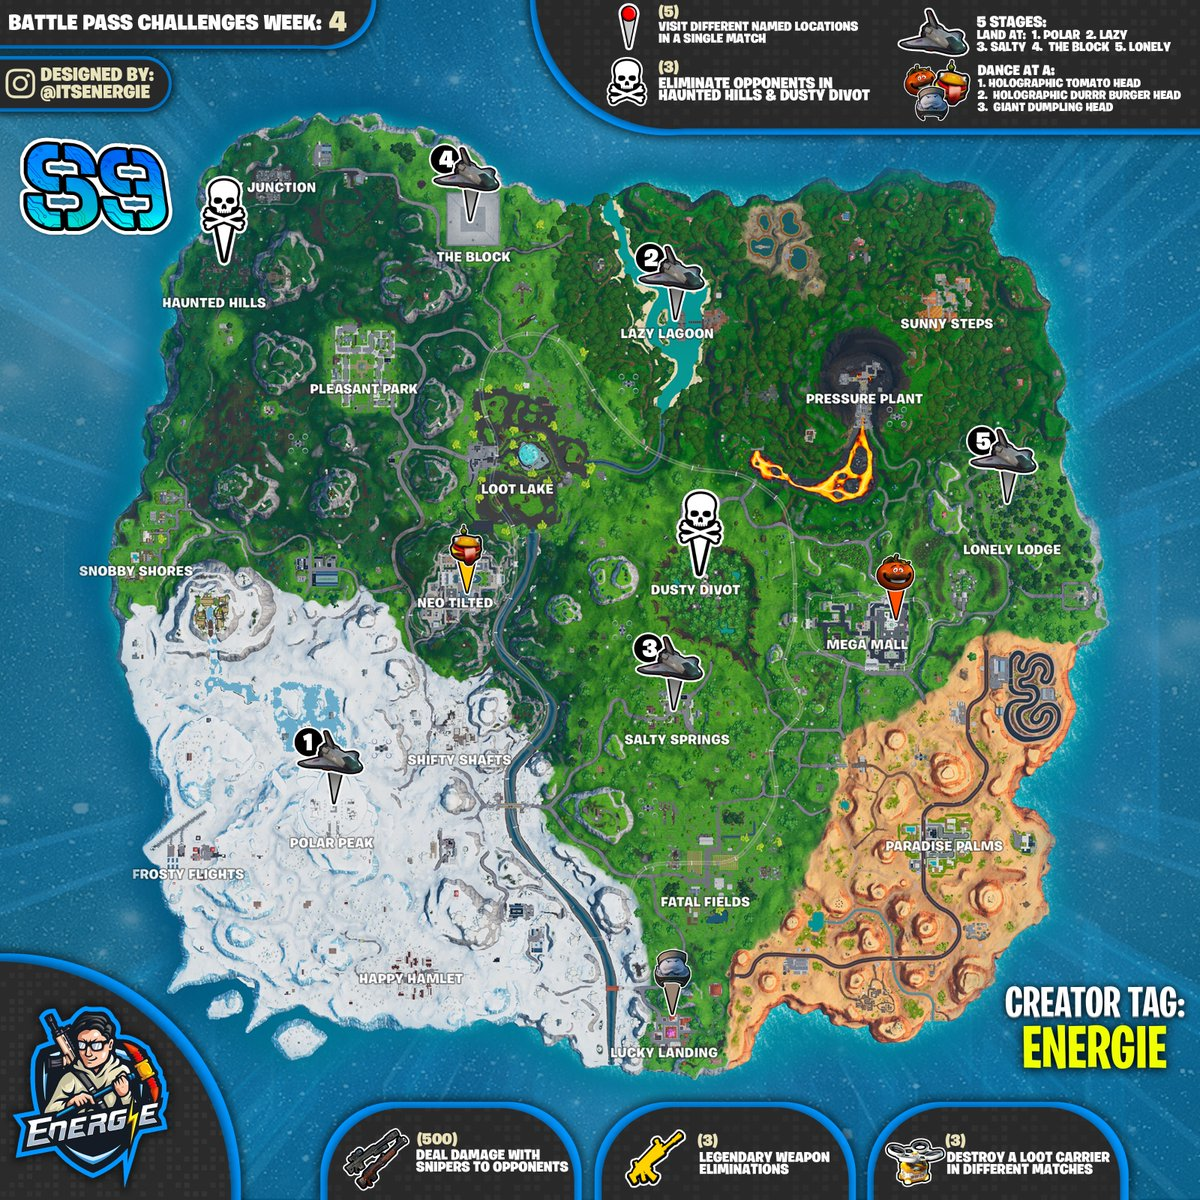 Fortnite Cheat Sheet Map For Season 9 Week 4 Challenges Fortnite Insider